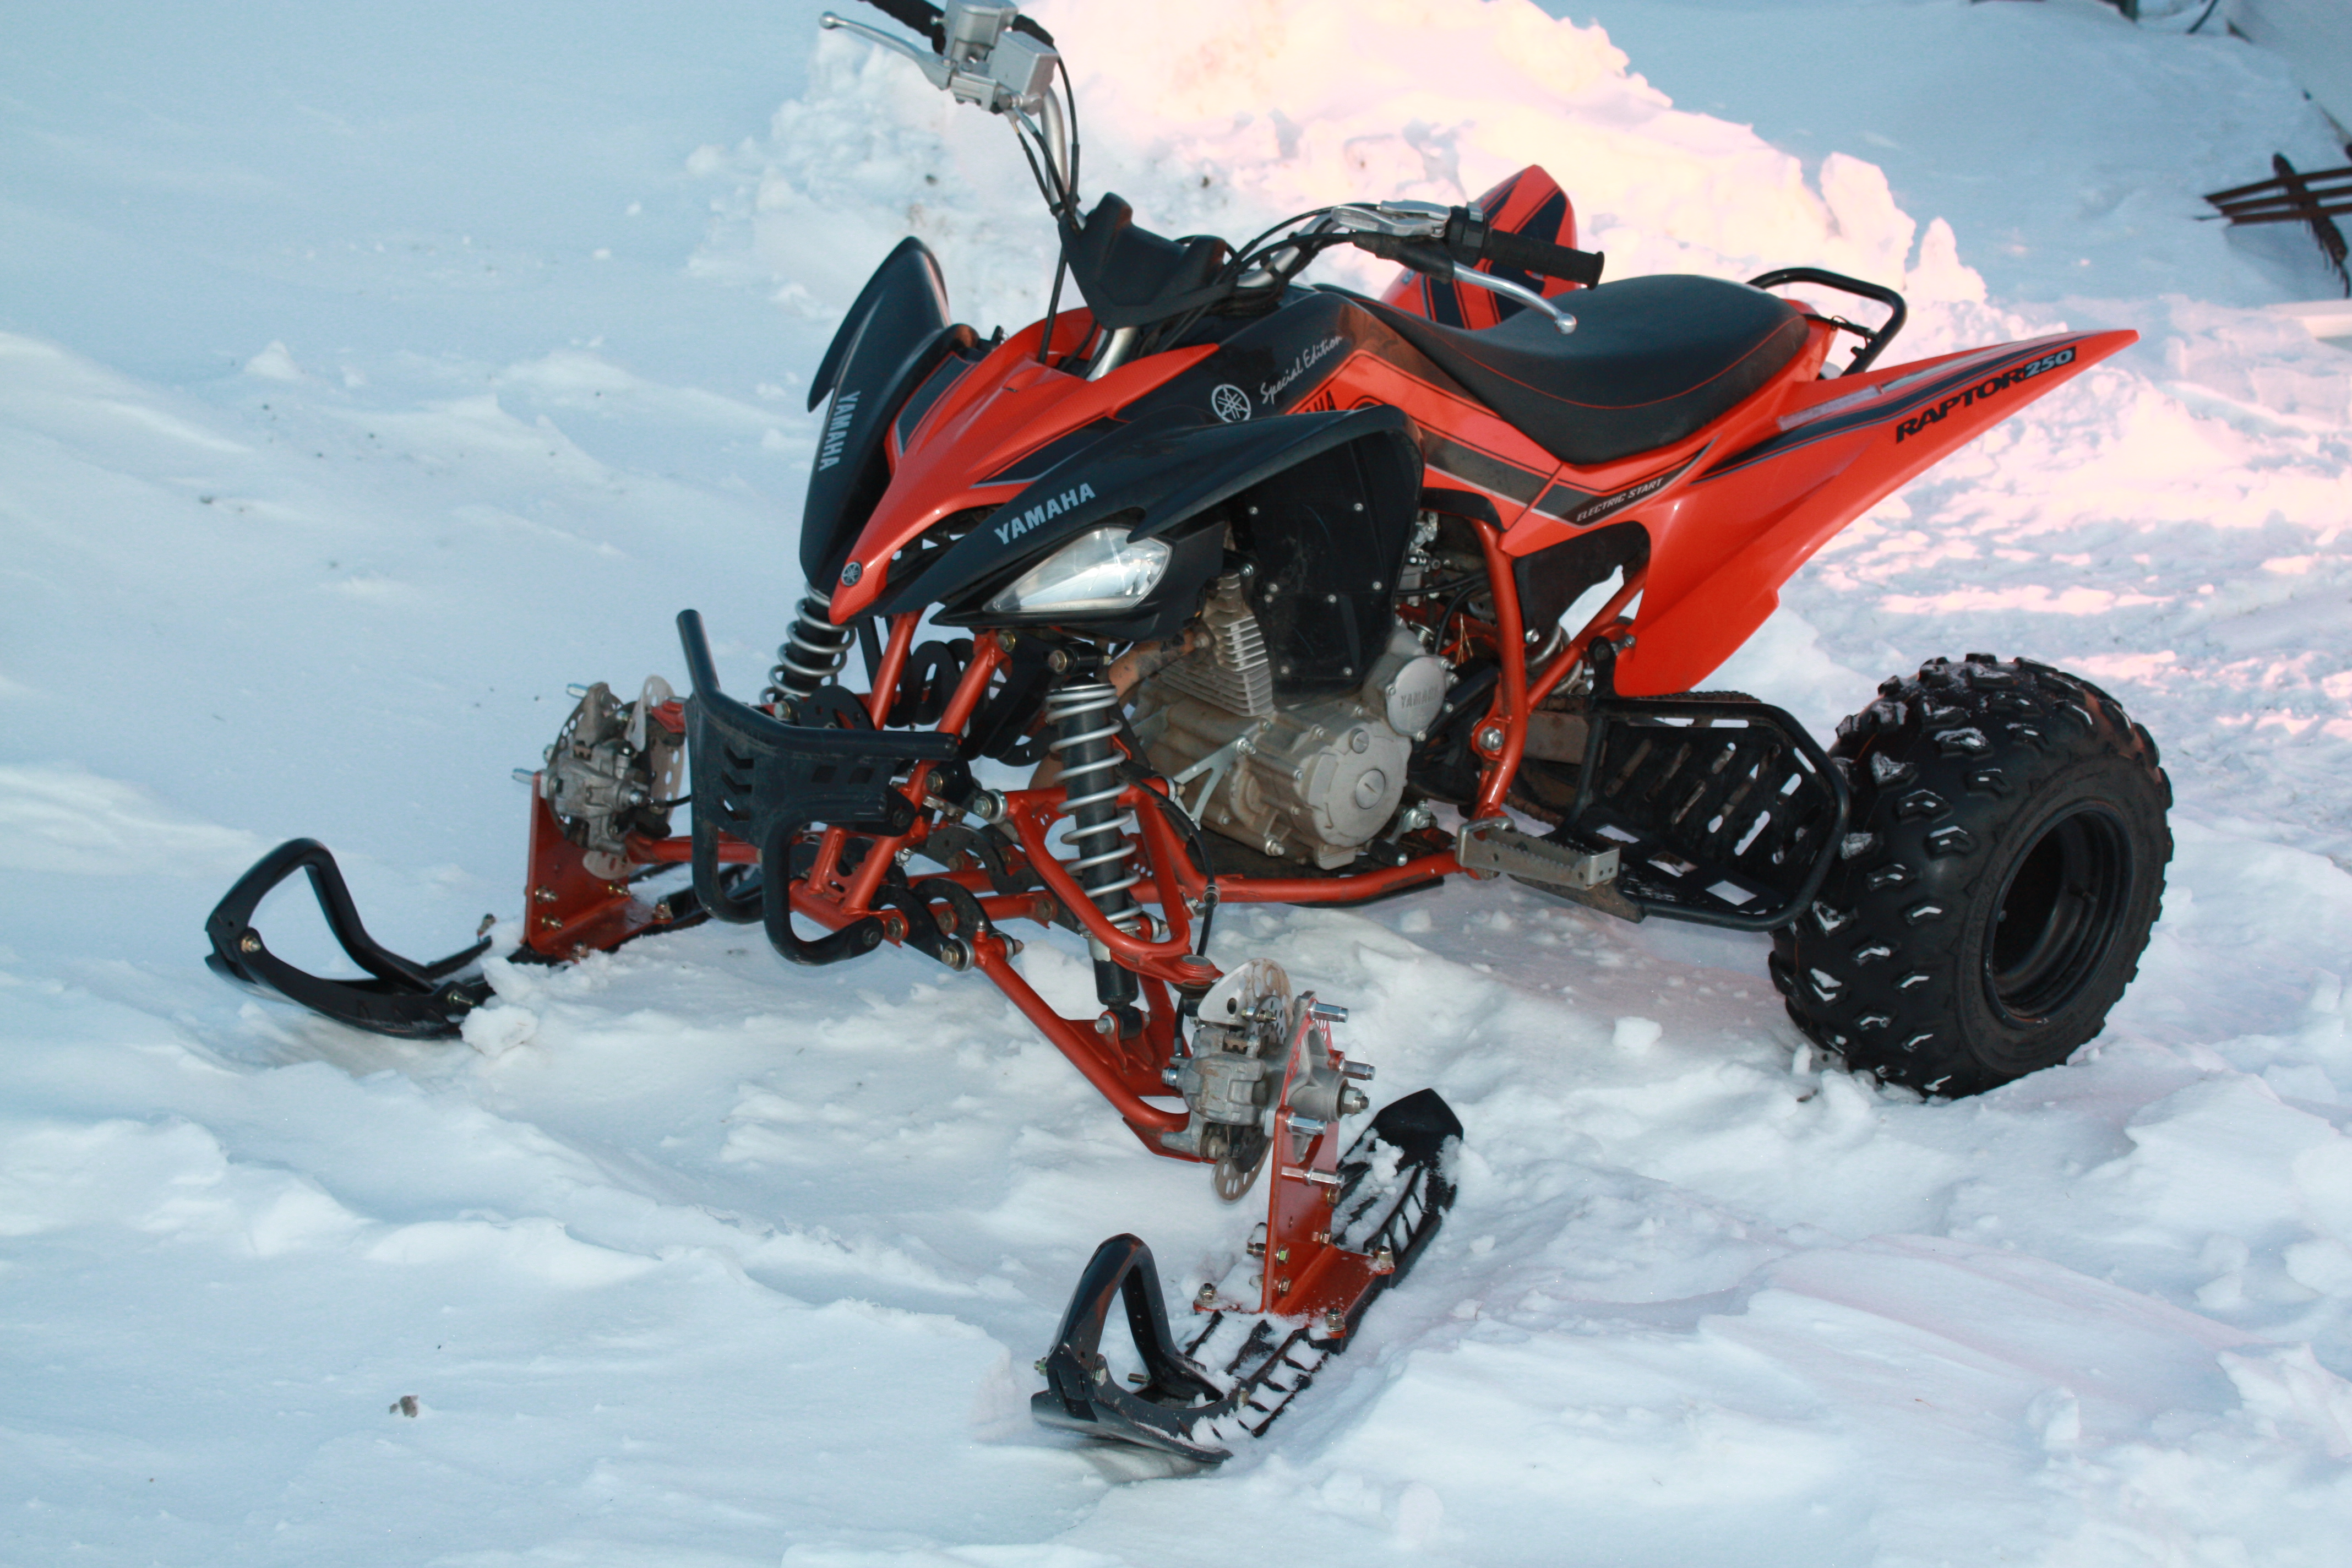 YAMAHA RAPTOR atv quad offroad motorbike bike dirtbike snowmobile snow 4272x2848